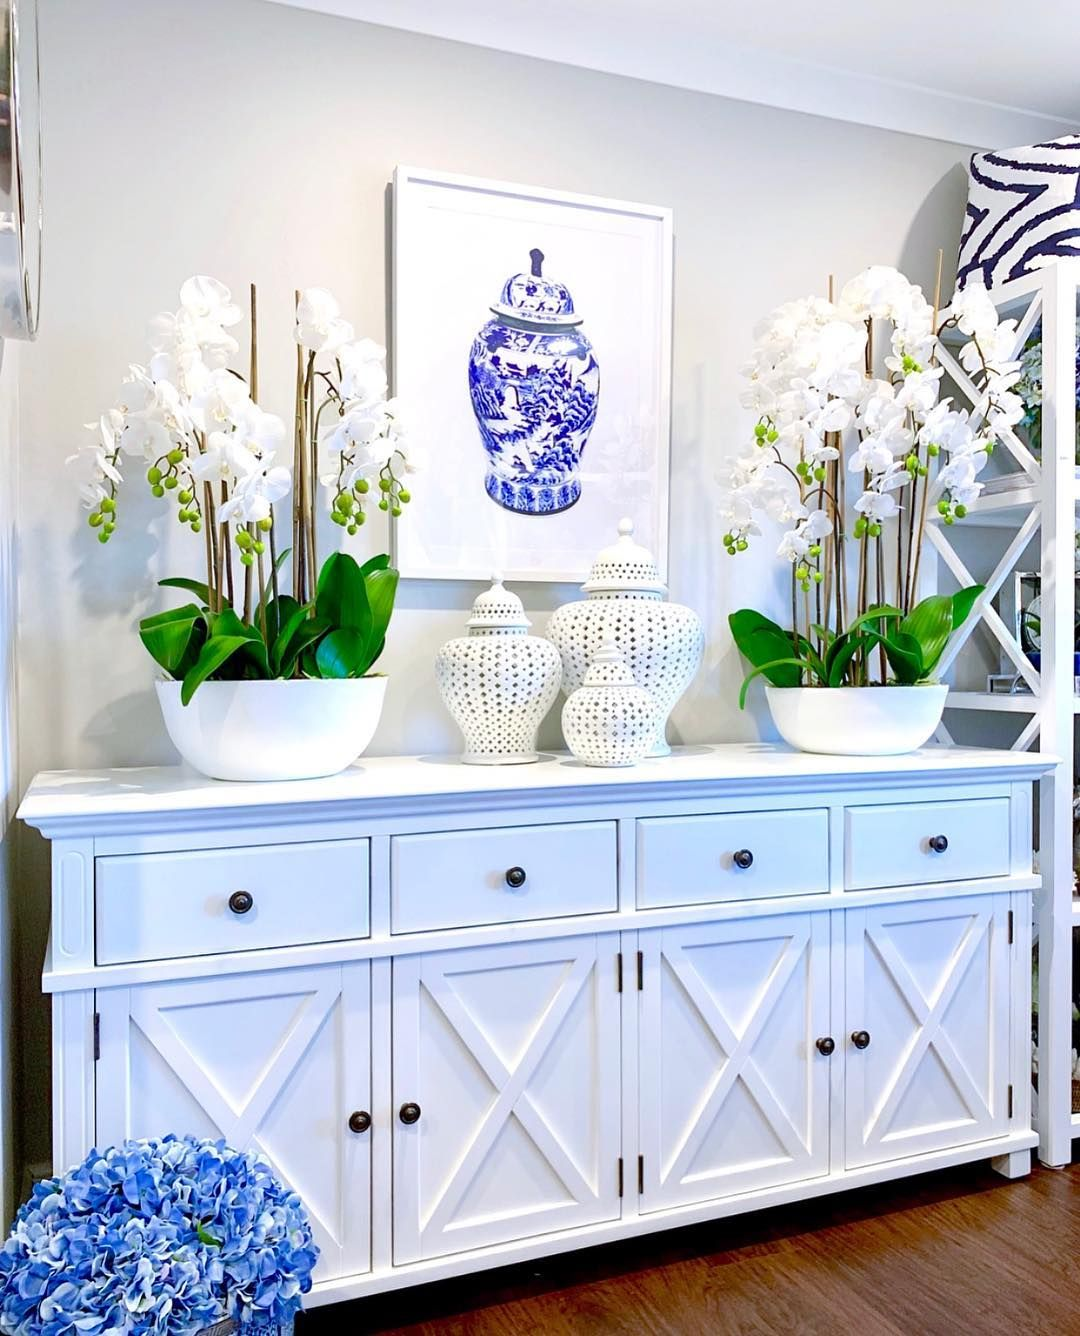 Hamptons Style Furnishings On Instagram With A Classic Chinoiserie Ginger Jar Design Our Newest Framed Print In 2020 Hamptons Style Living Room Decor House Interior #newest #living #room #designs